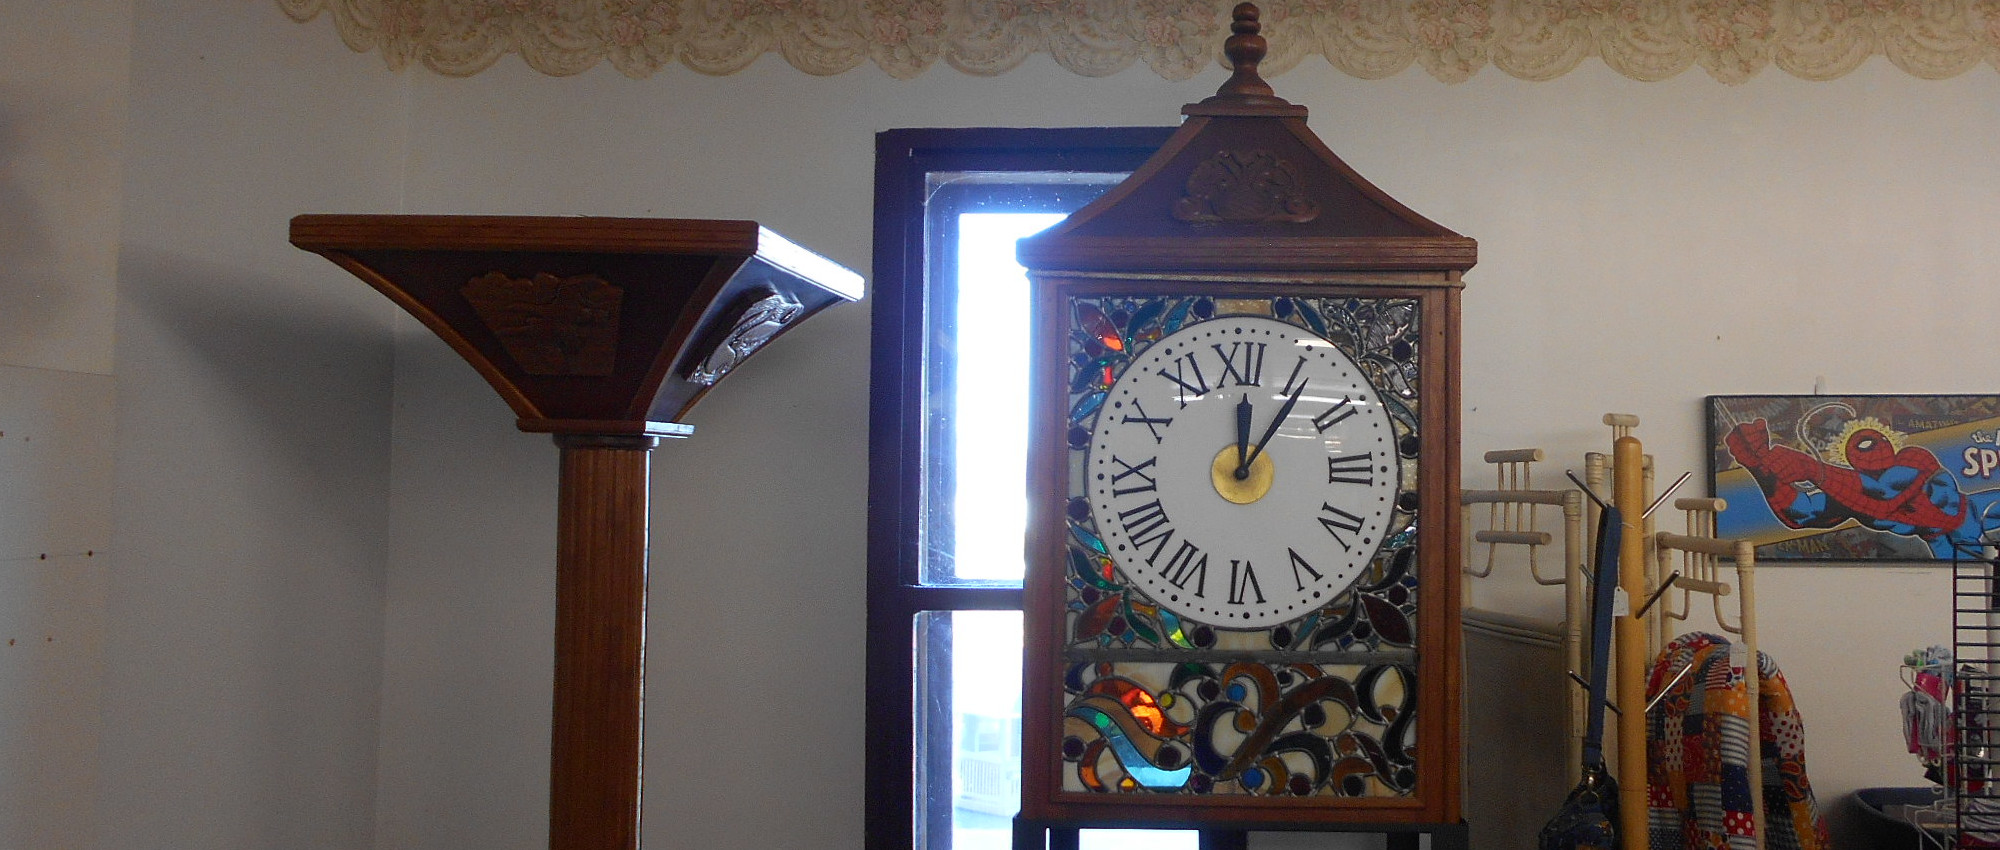 Winona clock at Treasures Under Sugar Loaf in Winona, Minnesota | Antiques, crafts, home decor, and collectibles